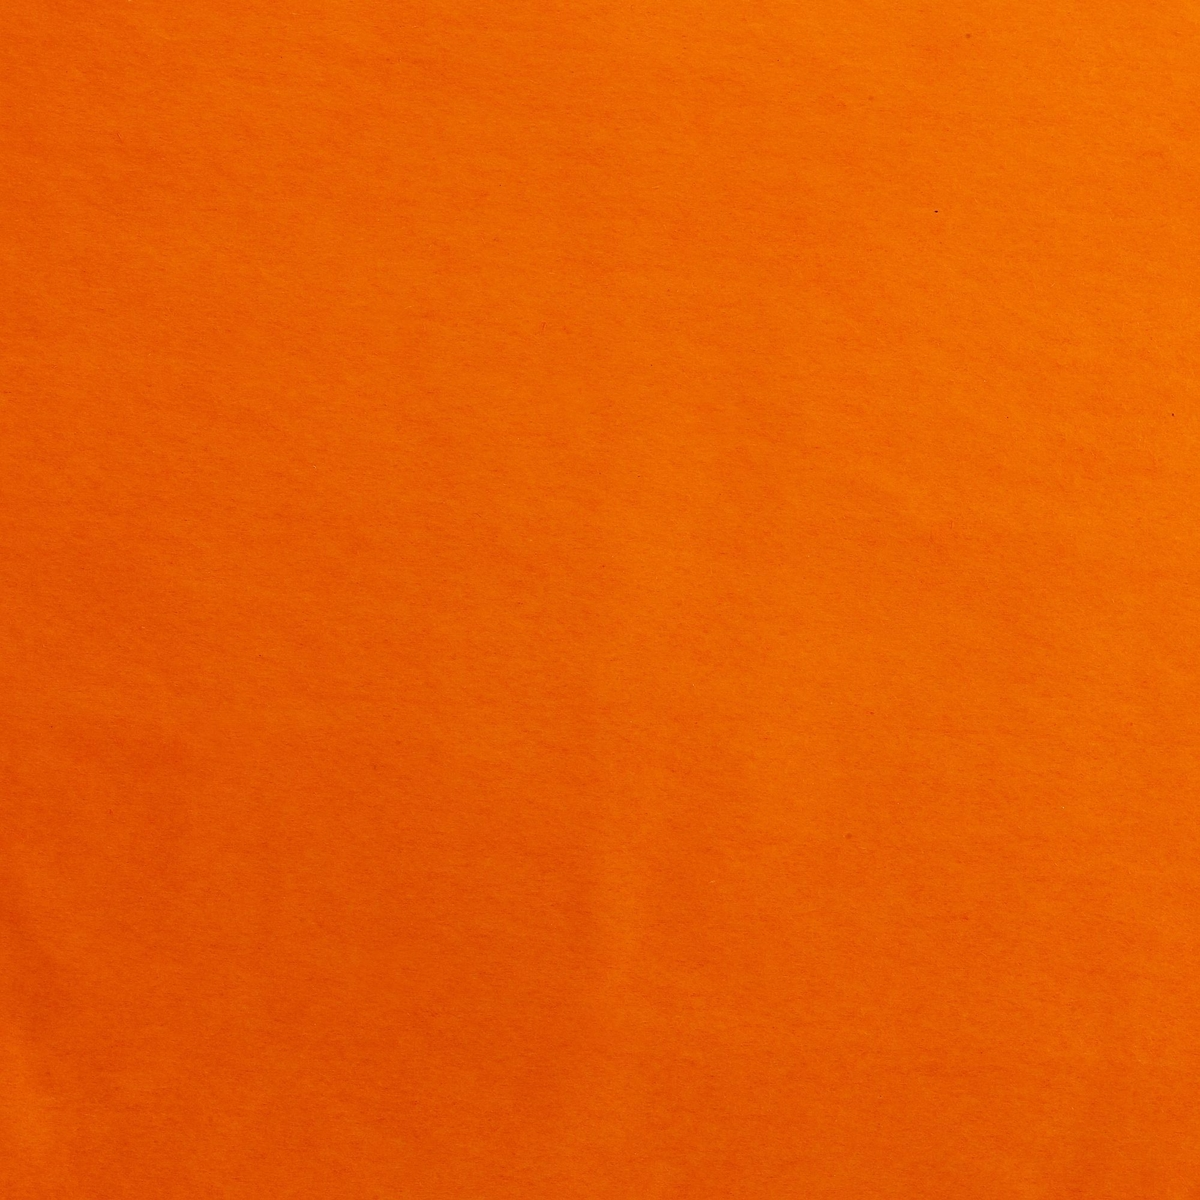 Silkespapper 50x70 5st orange